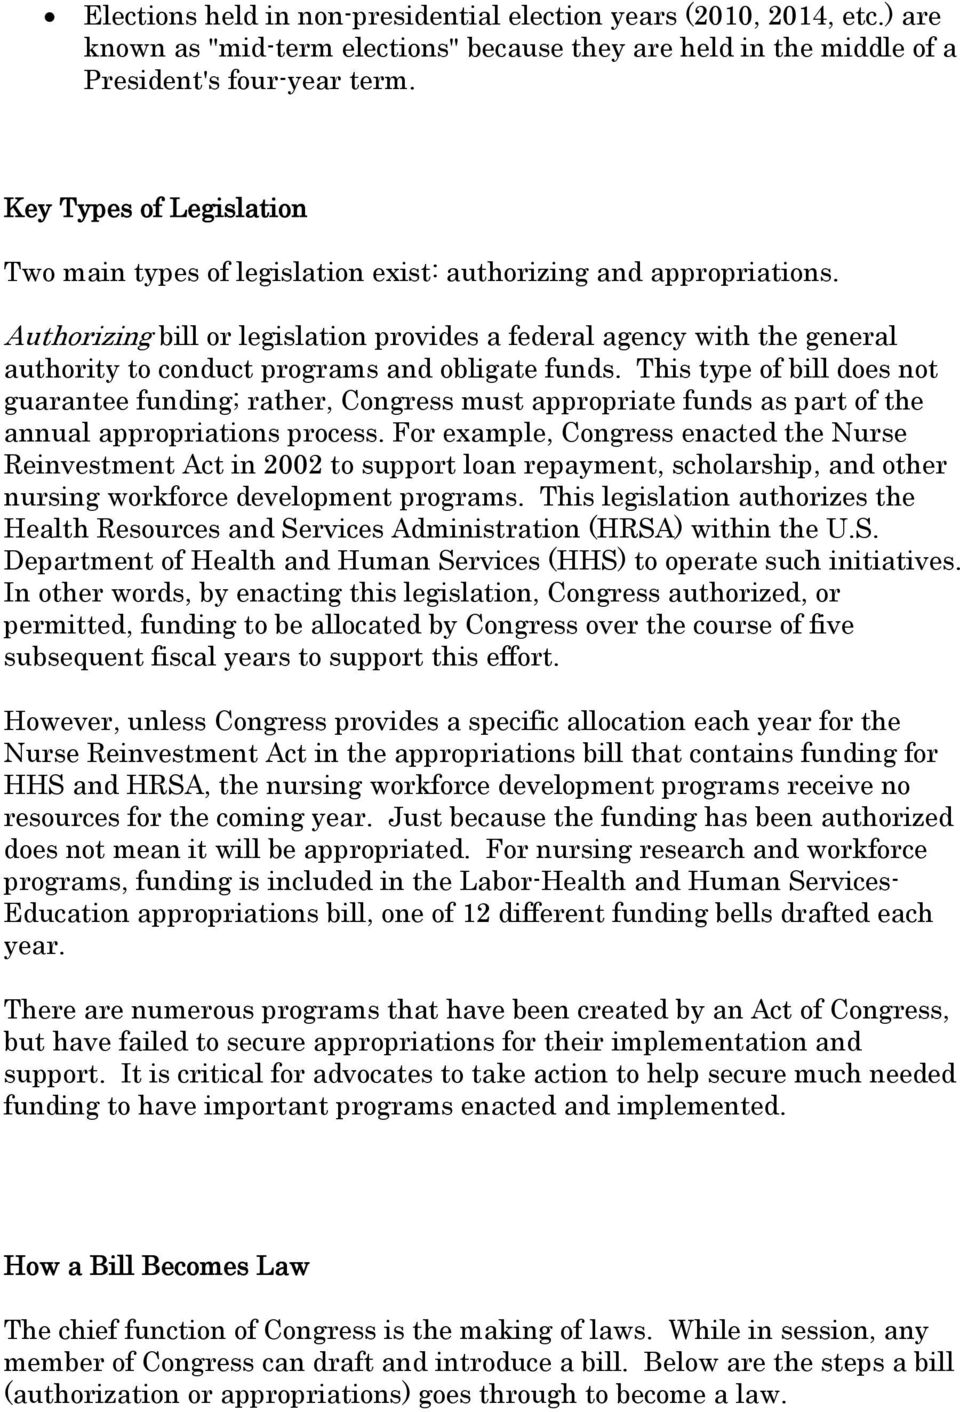 Authorizing bill or legislation provides a federal agency with the general authority to conduct programs and obligate funds.